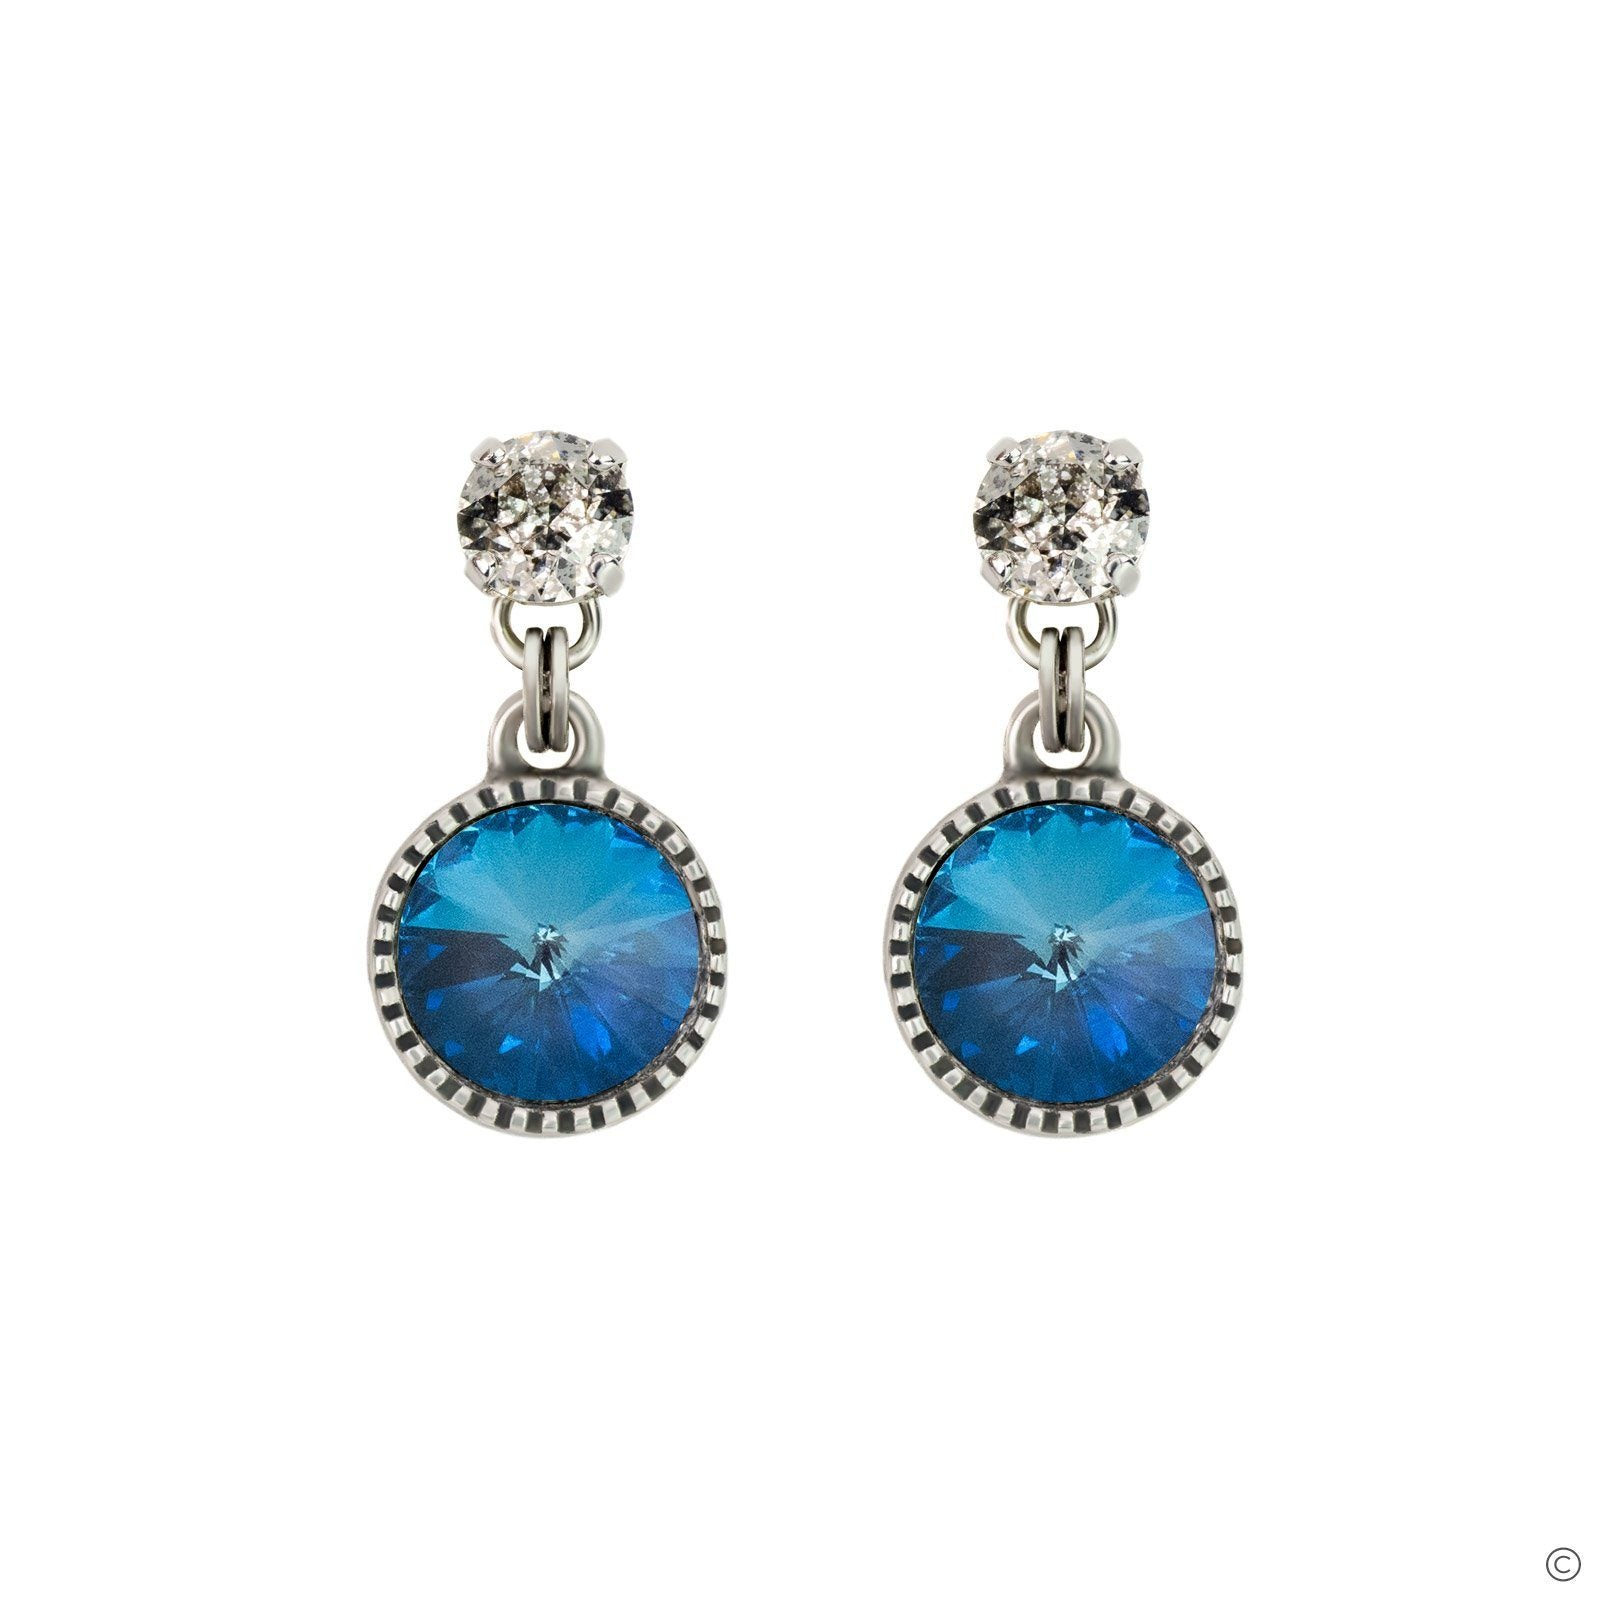 Daydream Earrings - Ocean Blue & Silver